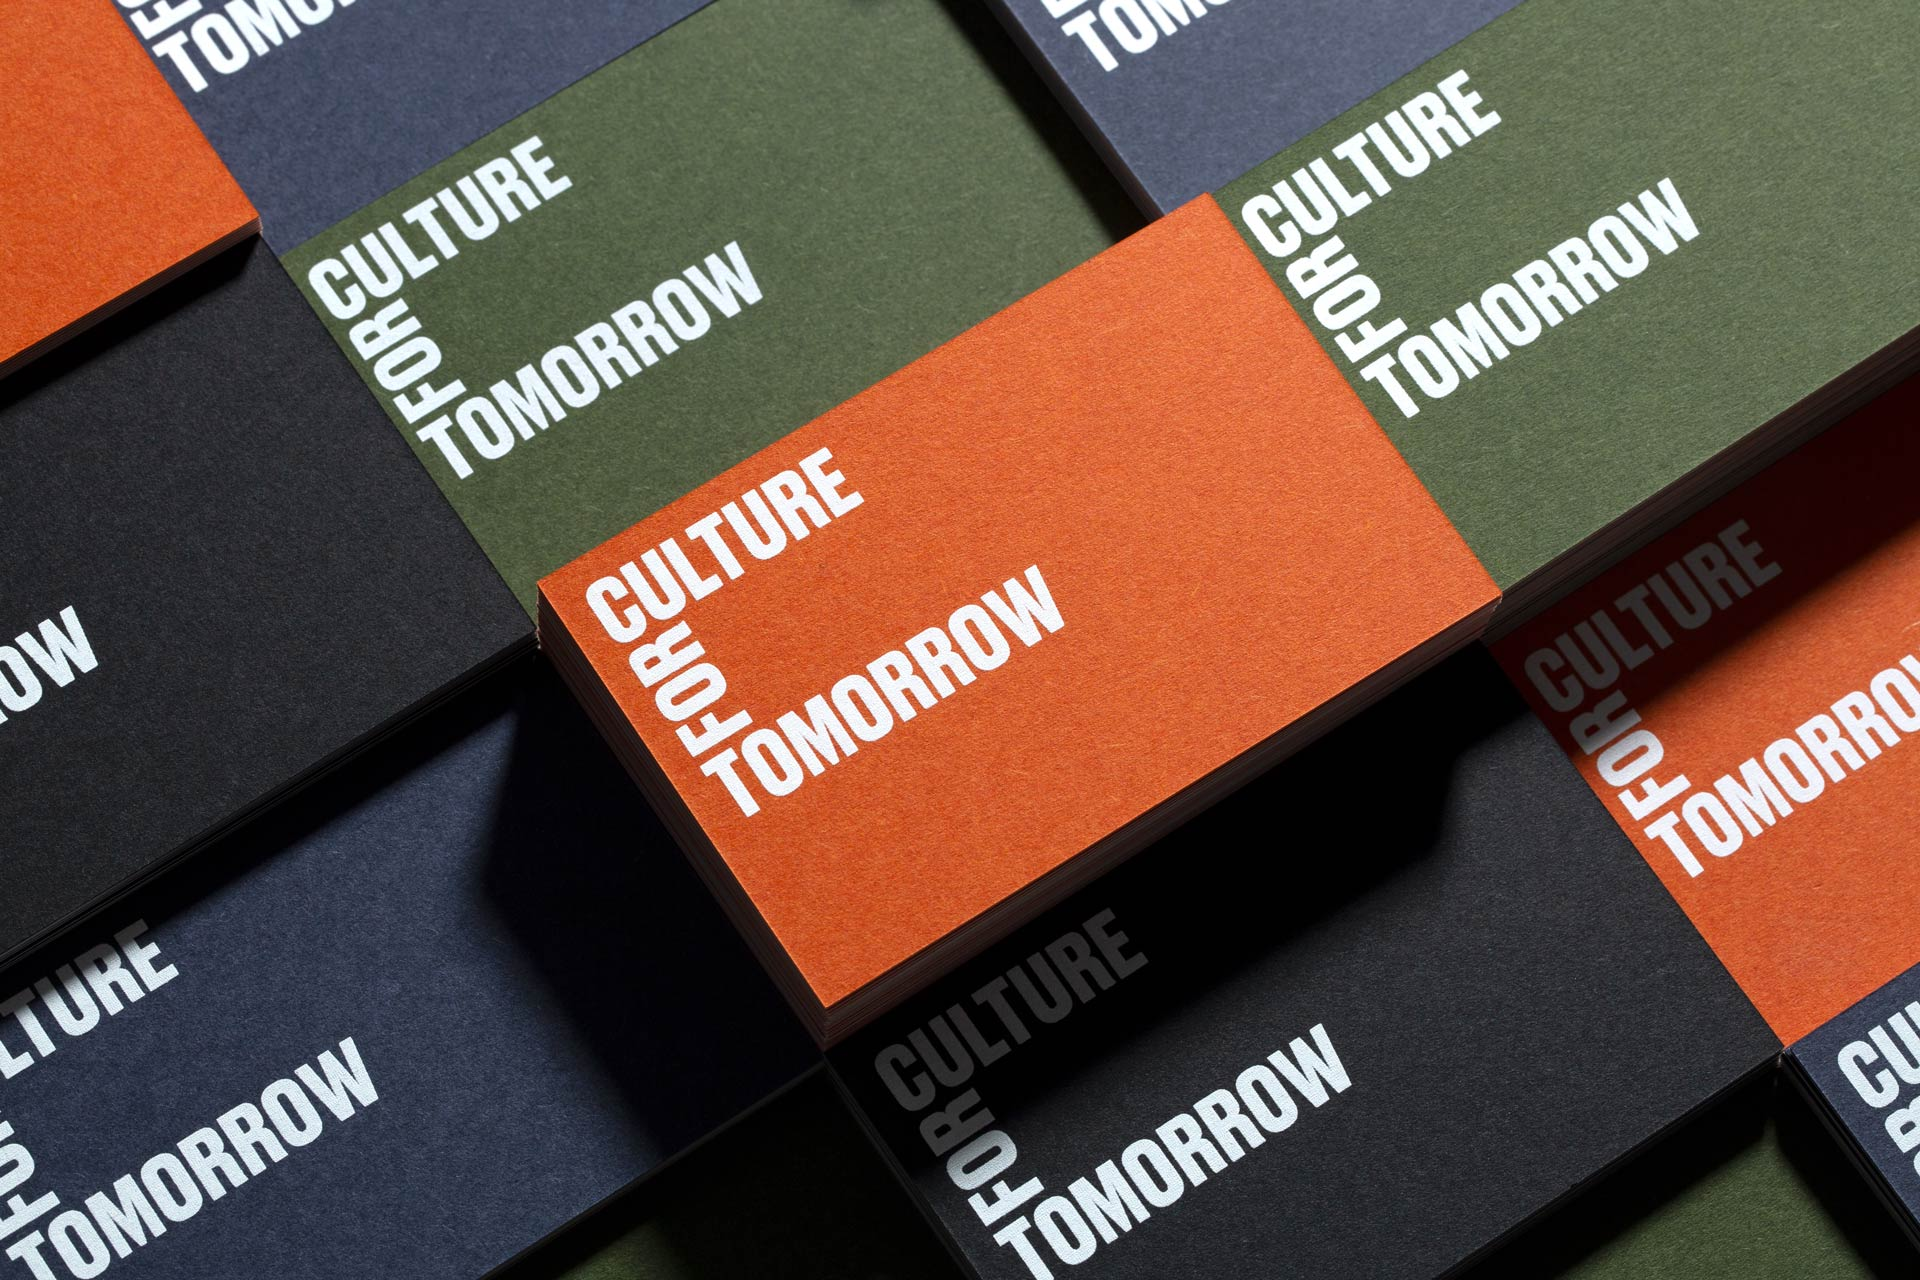 culture-for-tomorrow_01